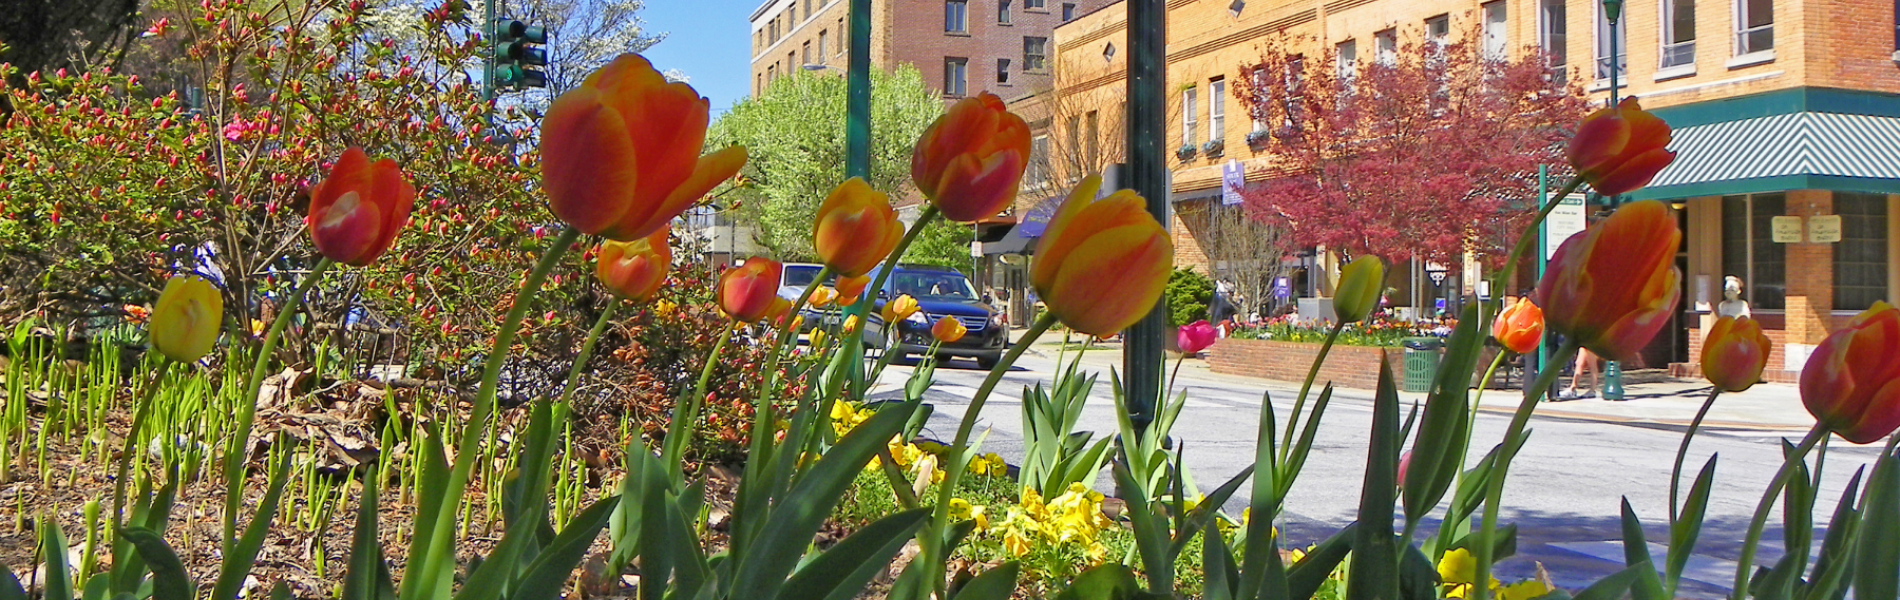 Tulips in Downtown